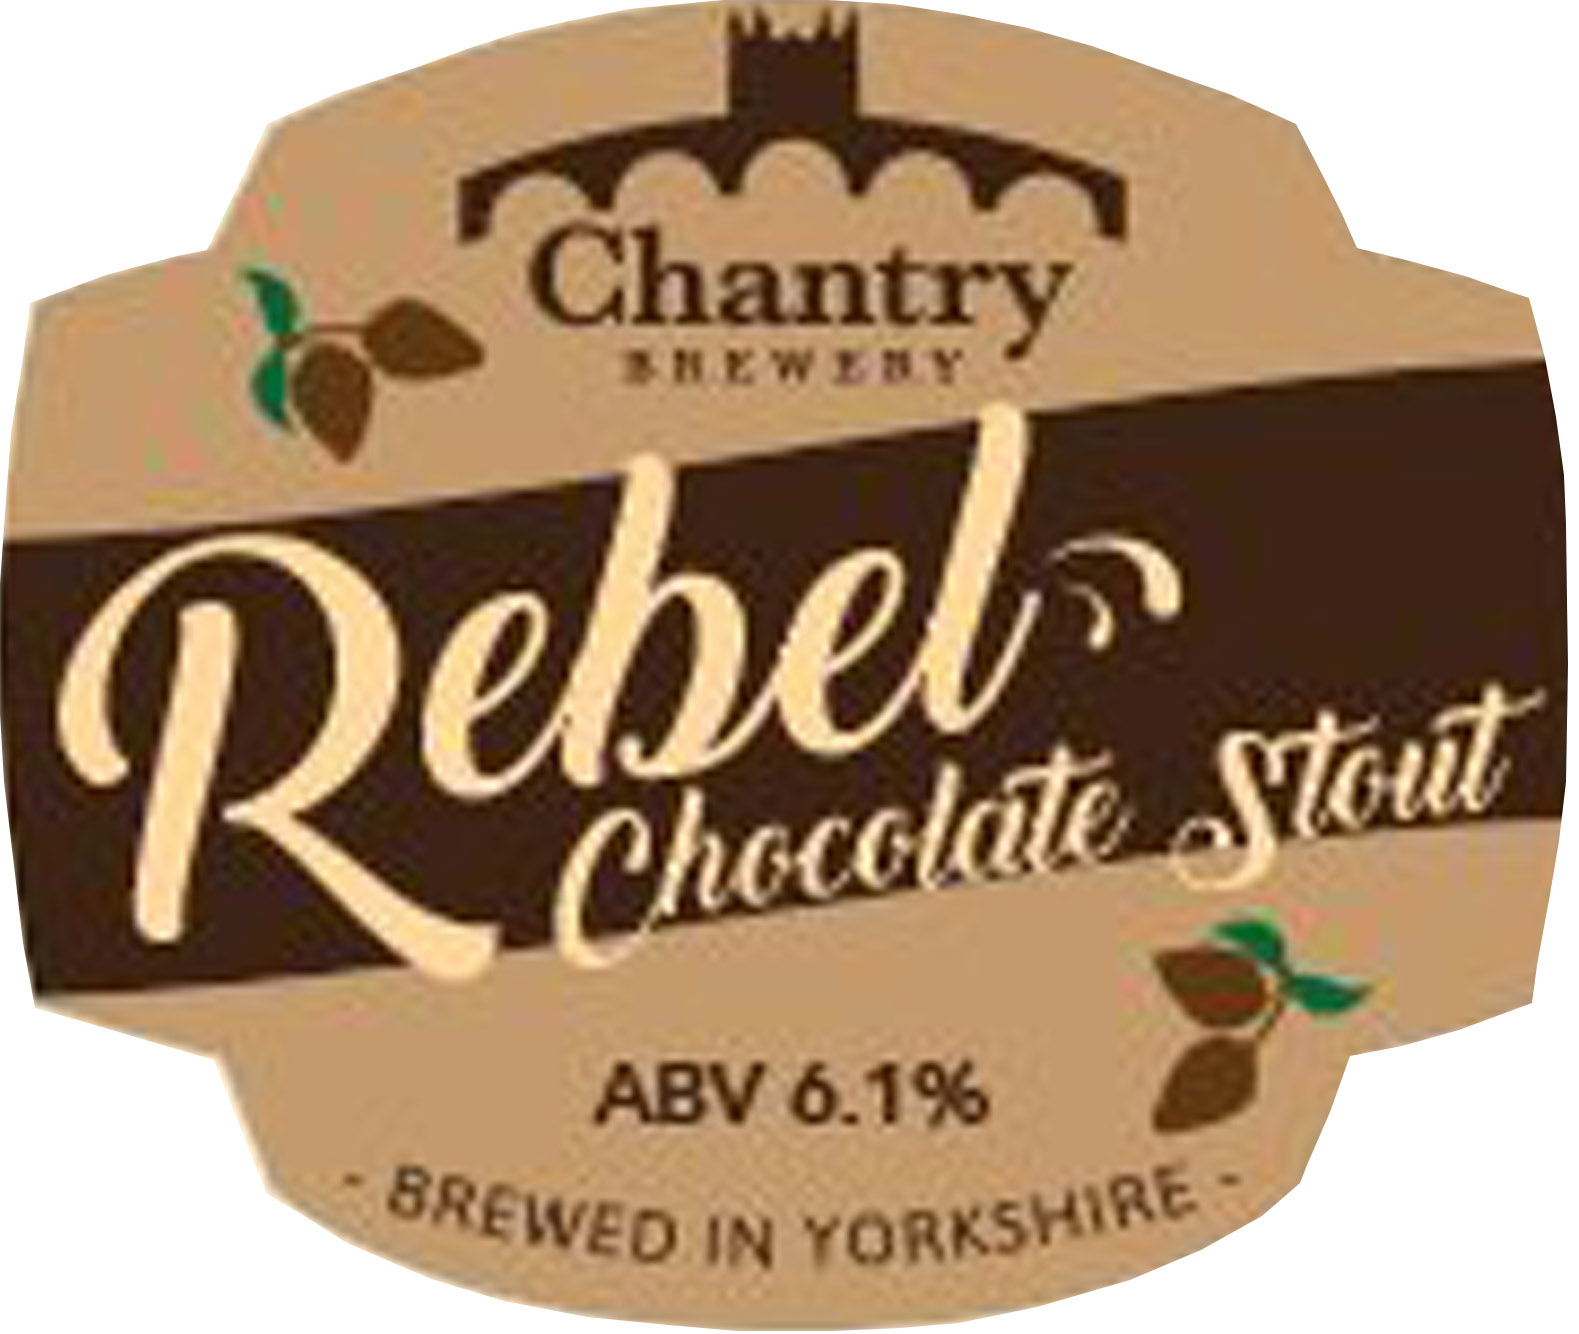 Chantry Brewery Rebel Chocolate Stout